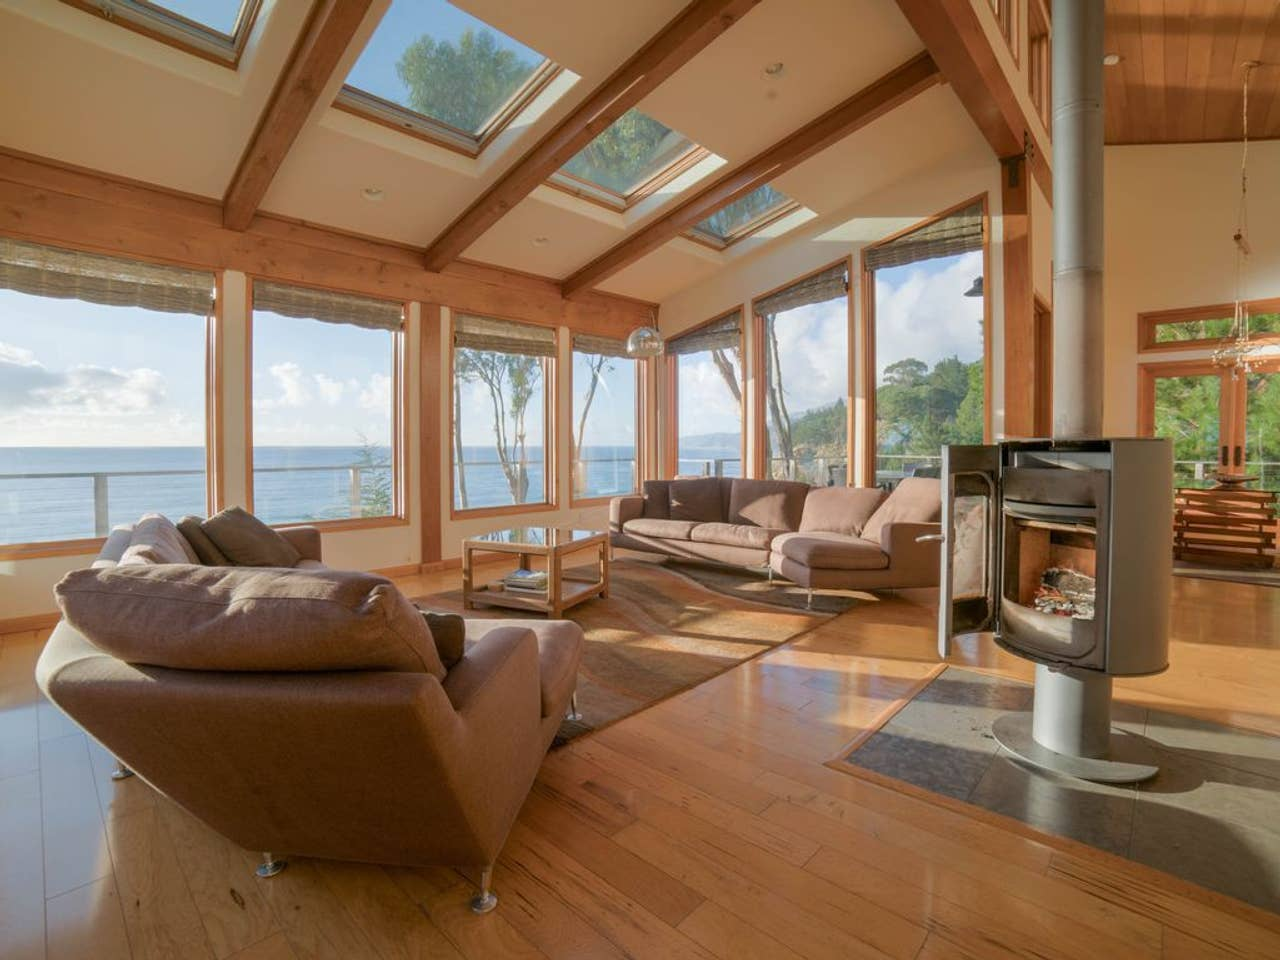 Ocean views from nearly every room! Imagine lounging in this airy common space.